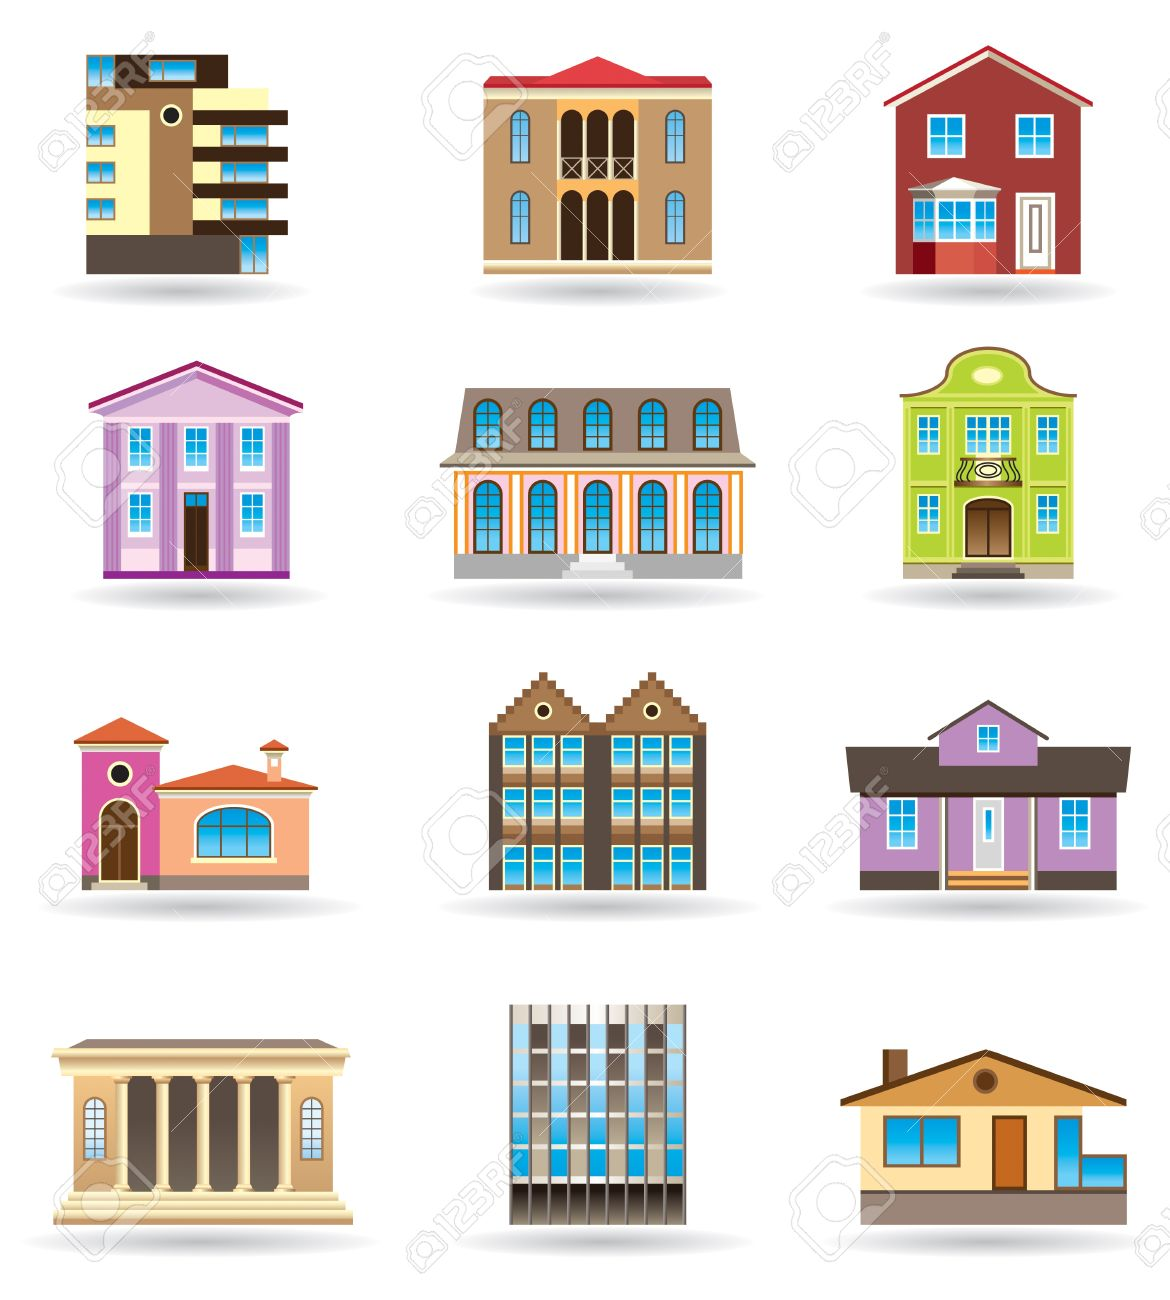 Buildings And Houses In Different Architectural Styles Royalty.